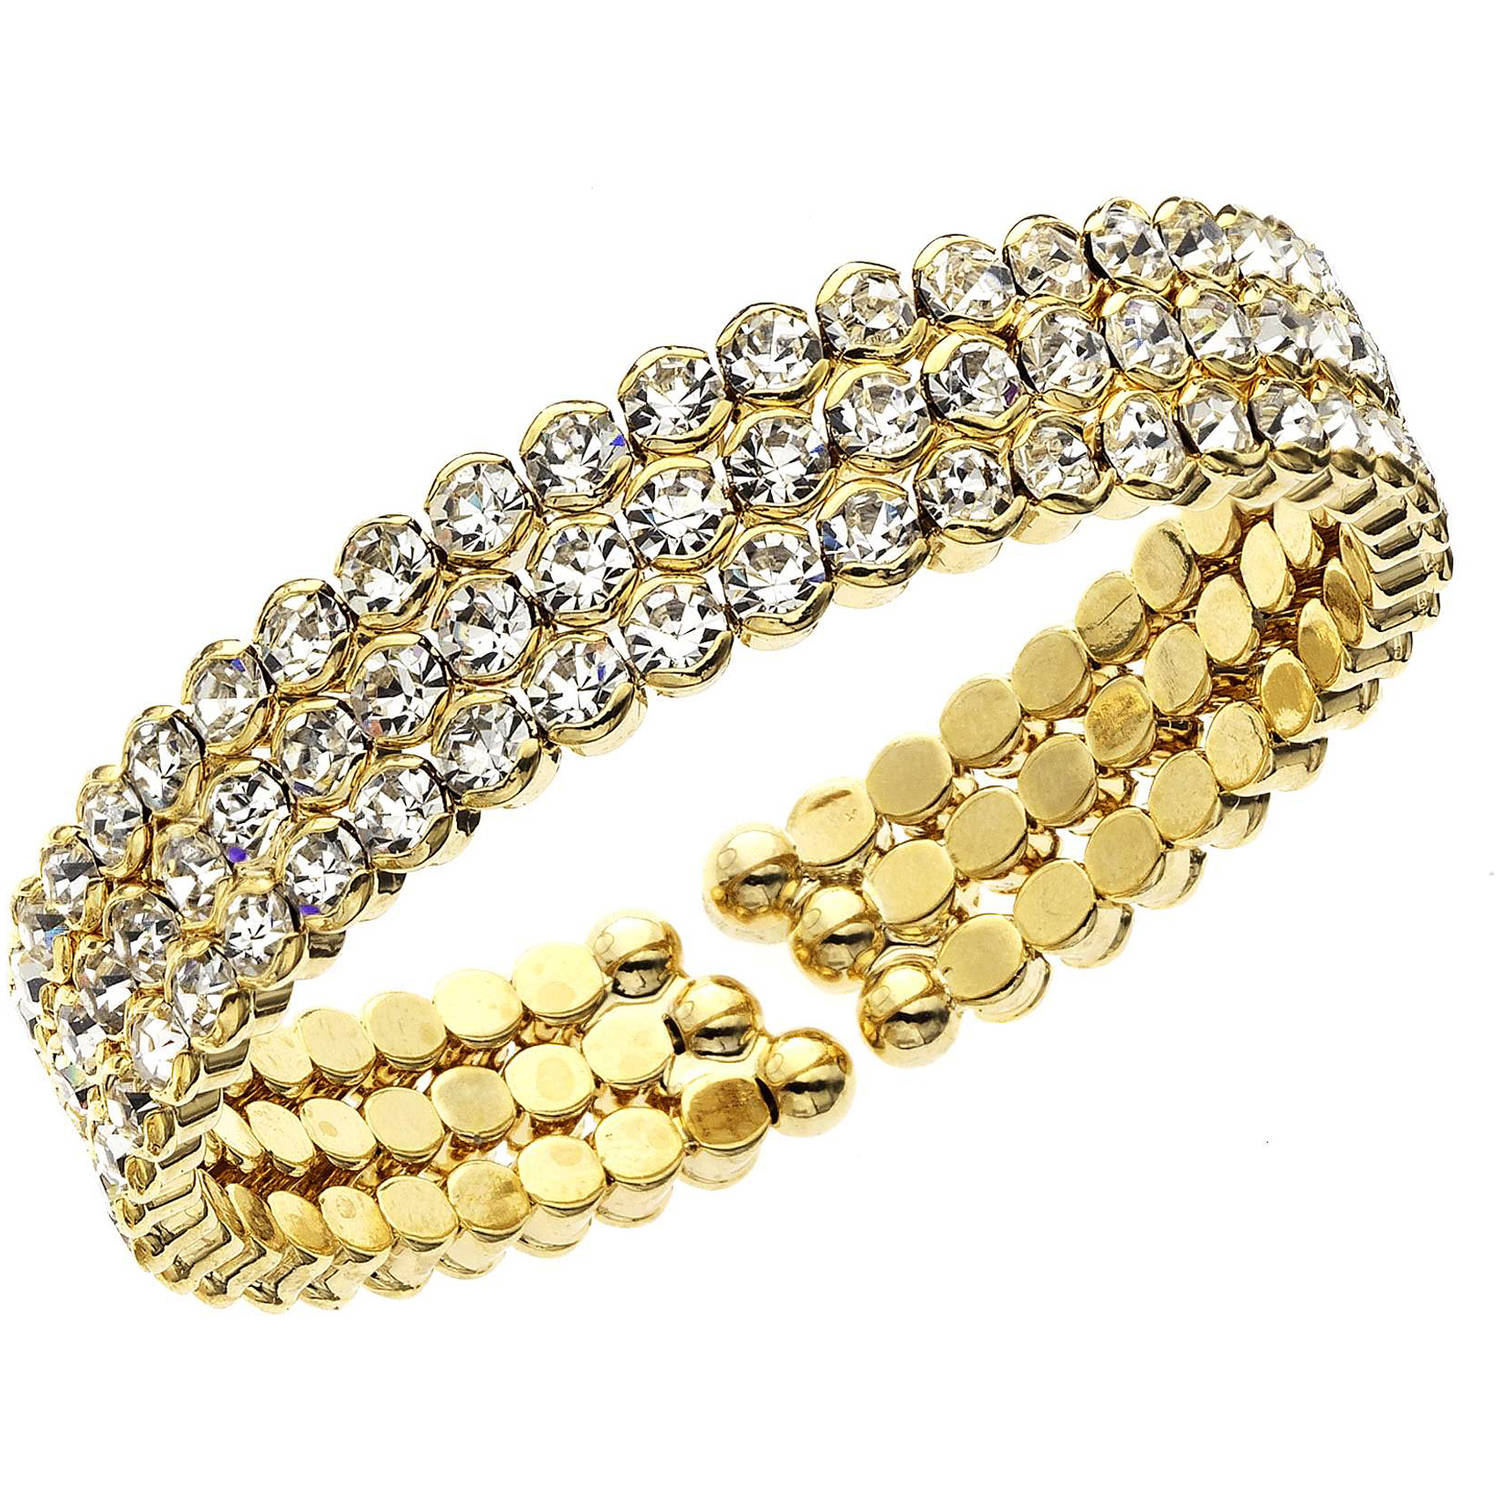 X & O 14kt Gold-Plated Three-Row Honeycomb Cuff Bracelet, One Size